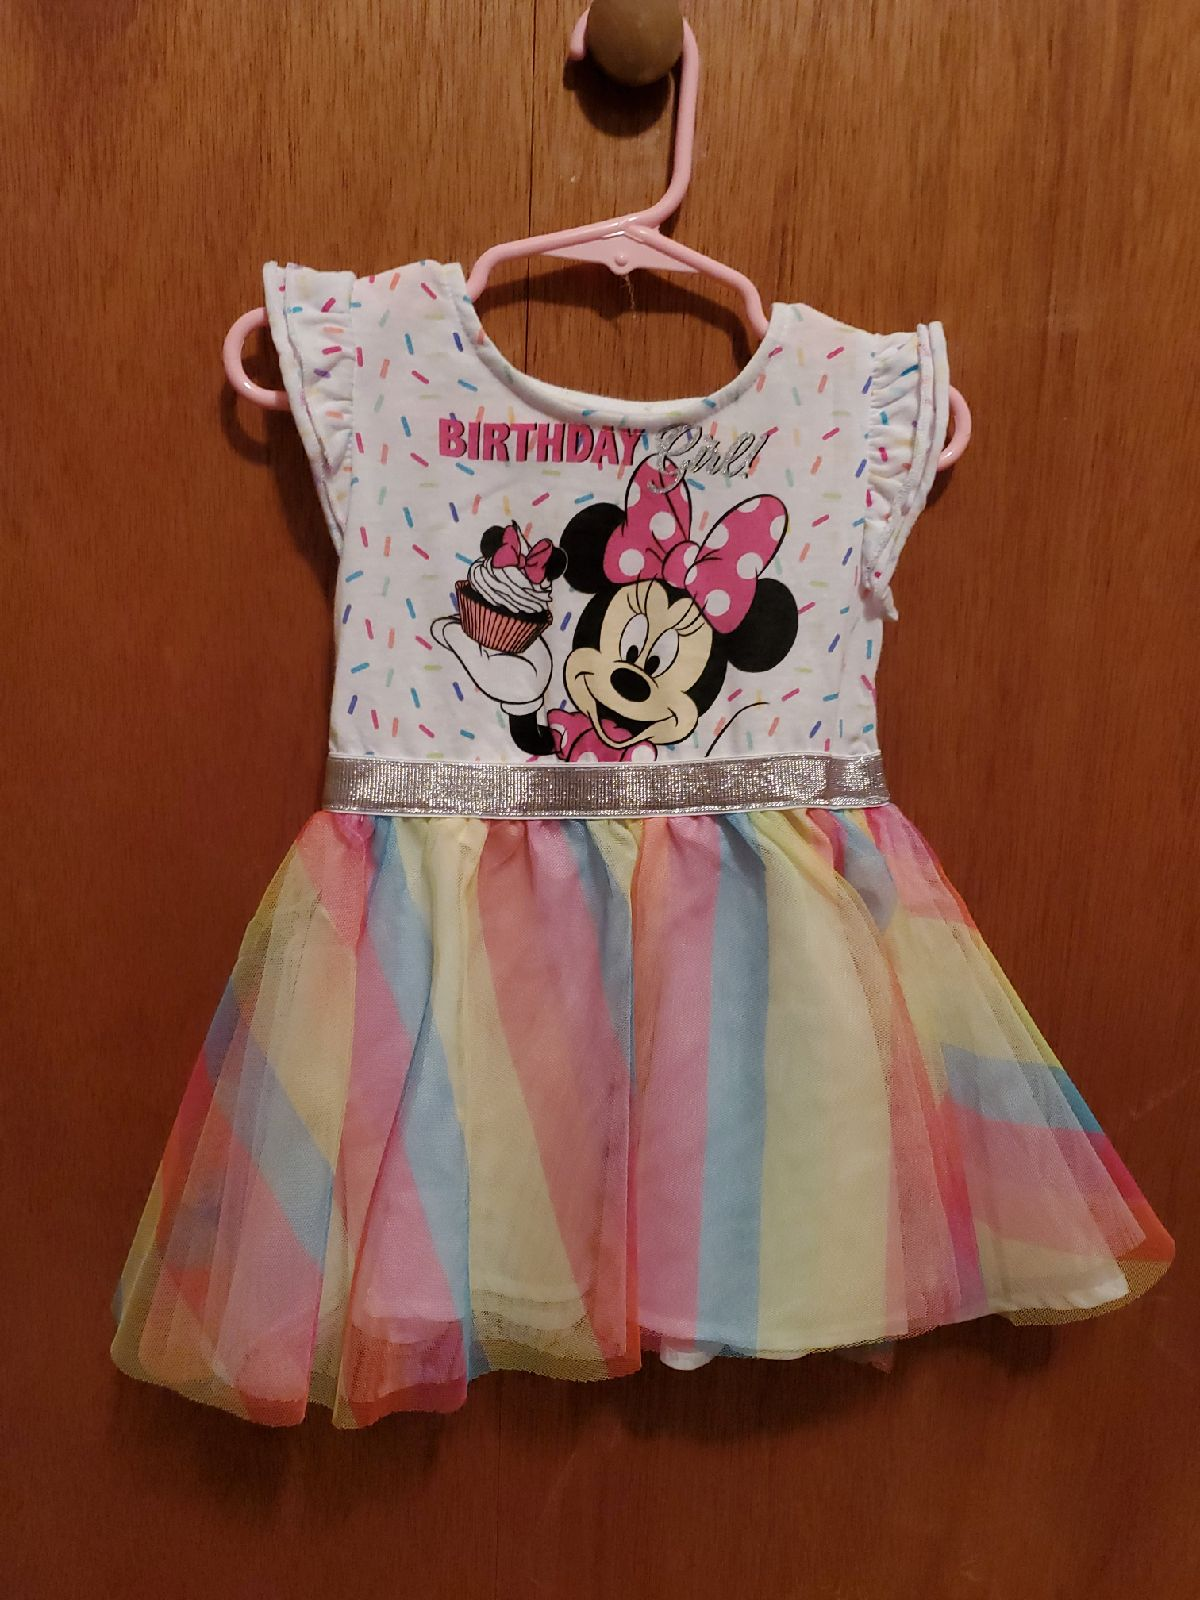 Minnie mouse birthday girl dress size 2T